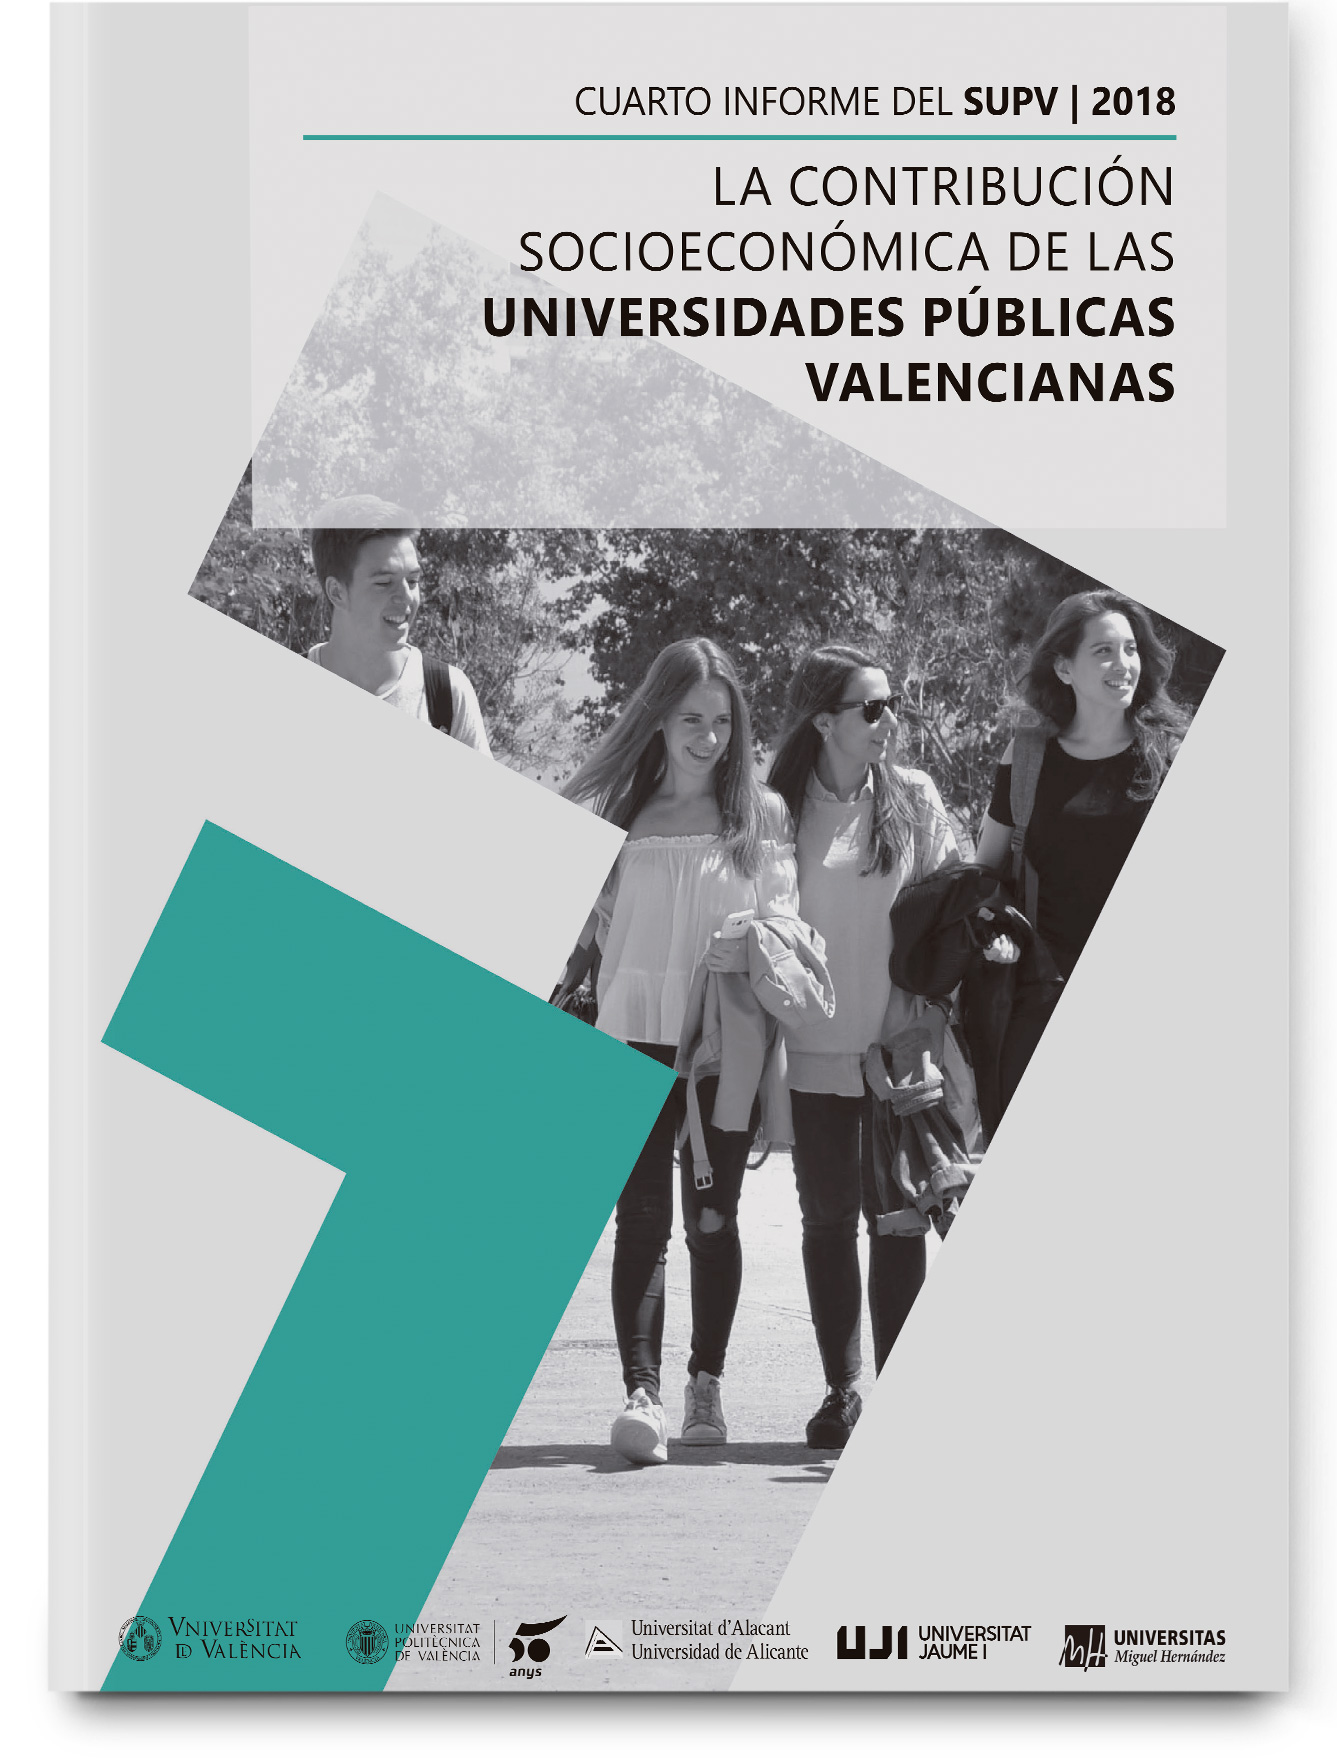 The social and economic contributions of the Valencian Public Universities.  Transparency and accountability to society.